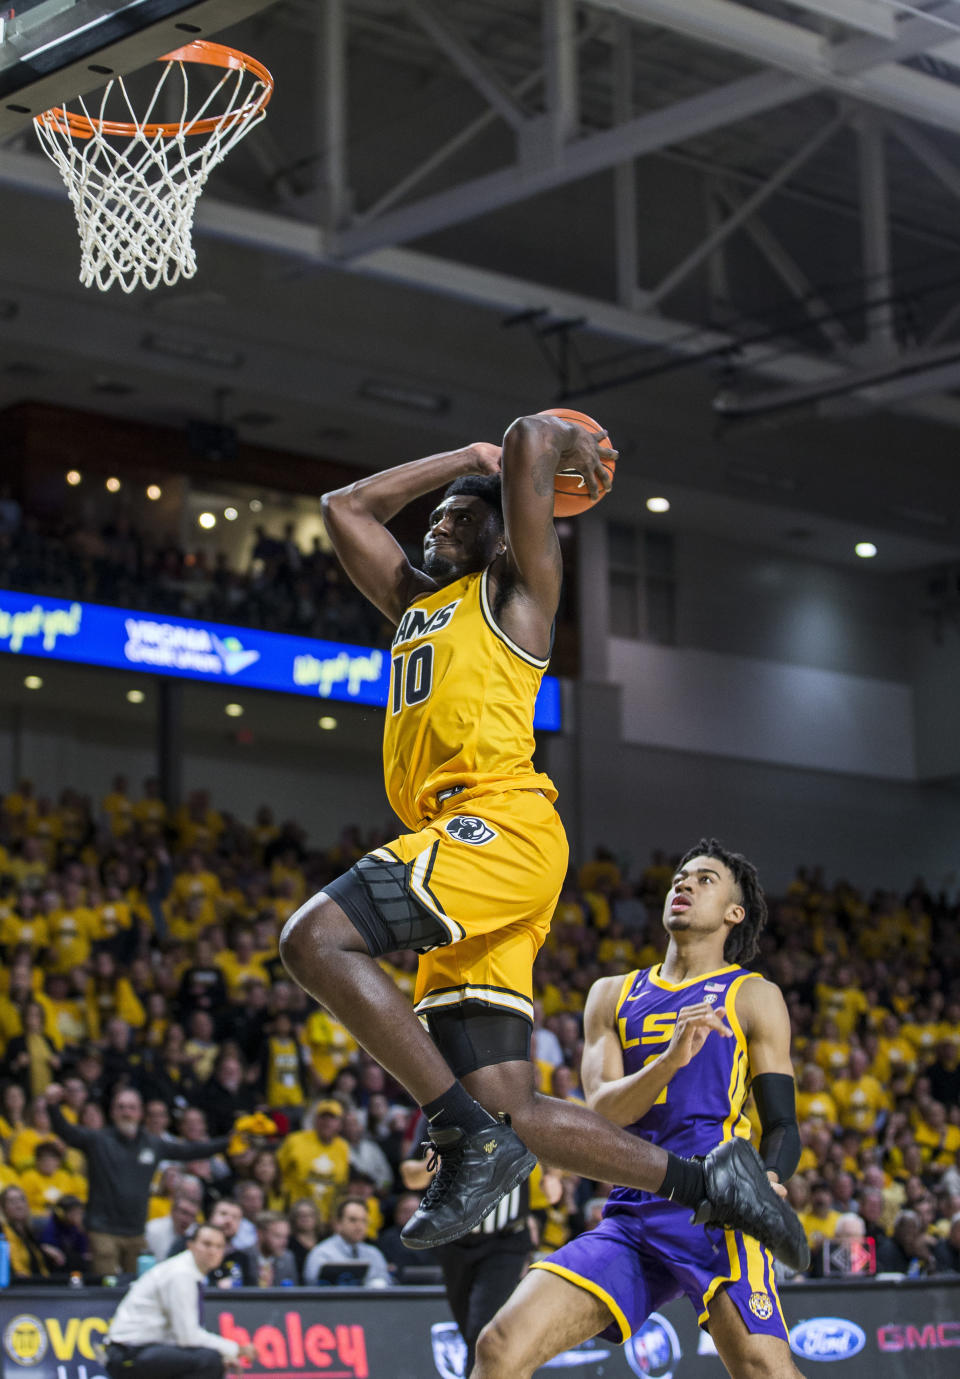 Virginia Commonwealth guard Vince Williams (10) dunks during the first half of an NCAA college basketball game against LSU in Richmond, Va., Wednesday, Nov. 13, 2019. (AP Photo/Zach Gibson)